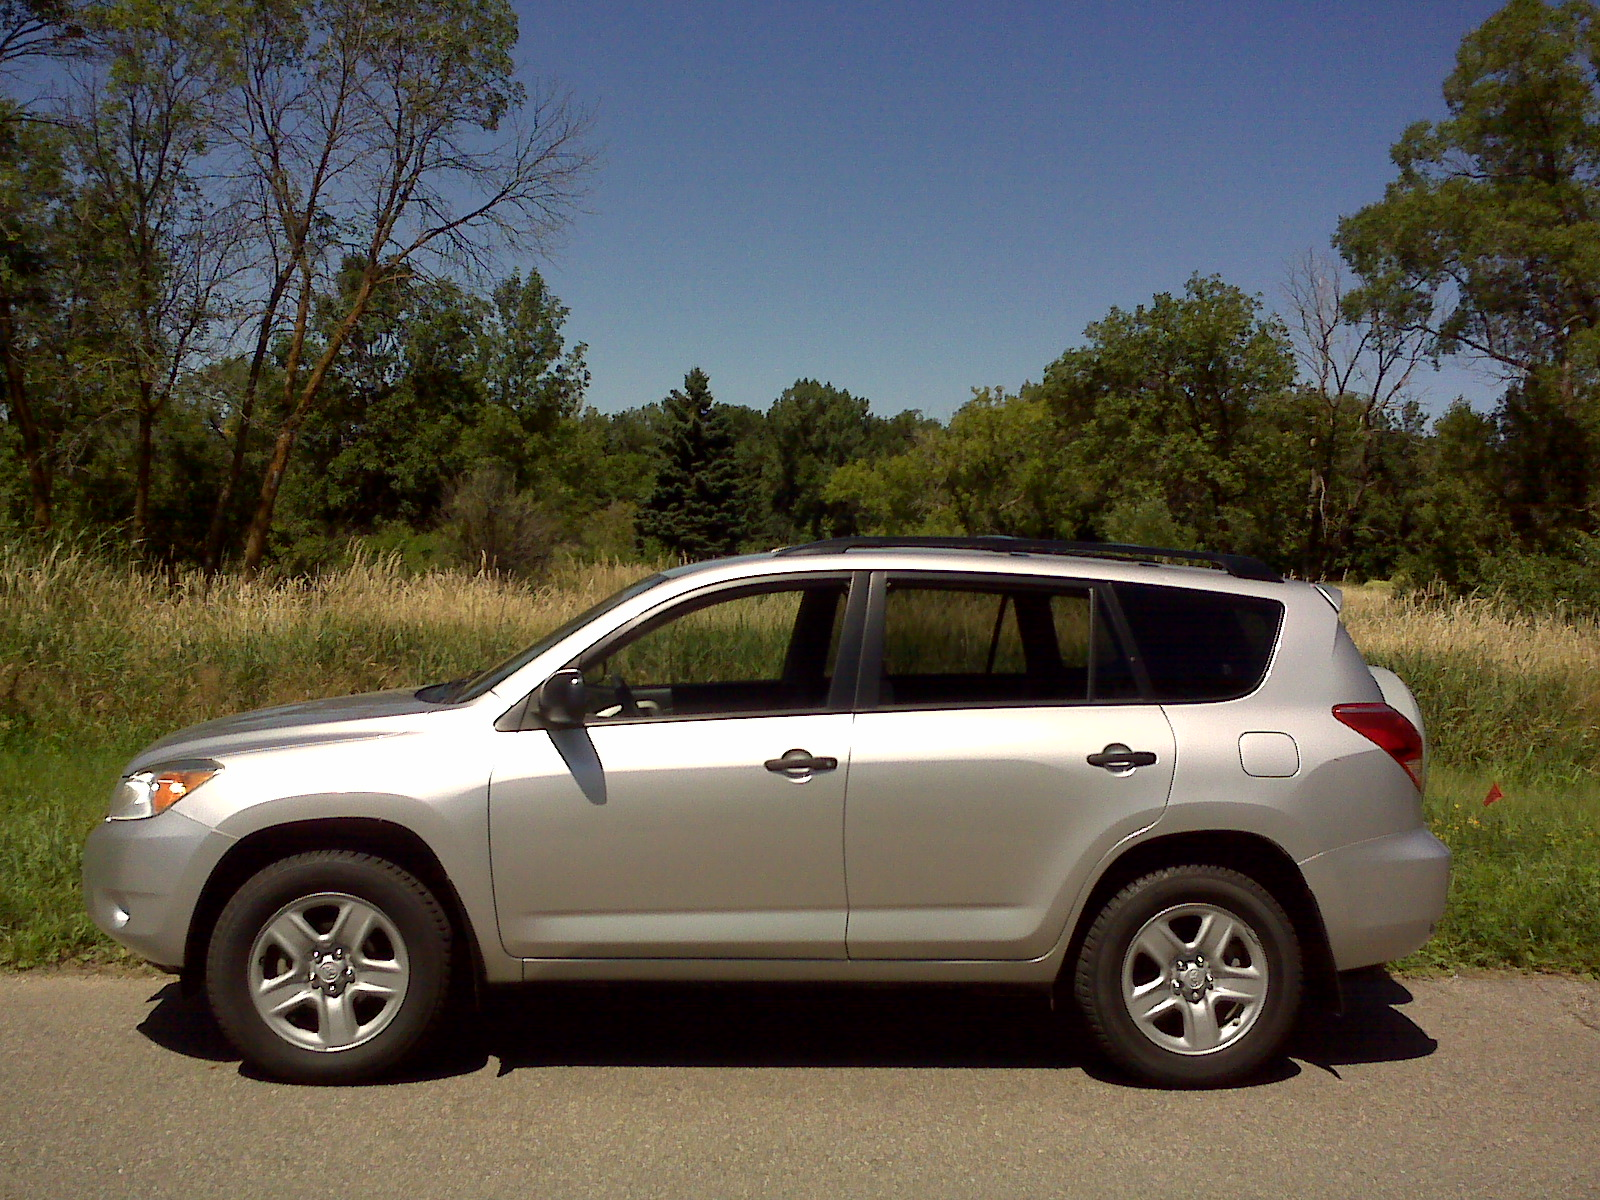 2006 4-wheel-drive Toyota RAV4 with a 4-cylinder, 2.4-liter engine